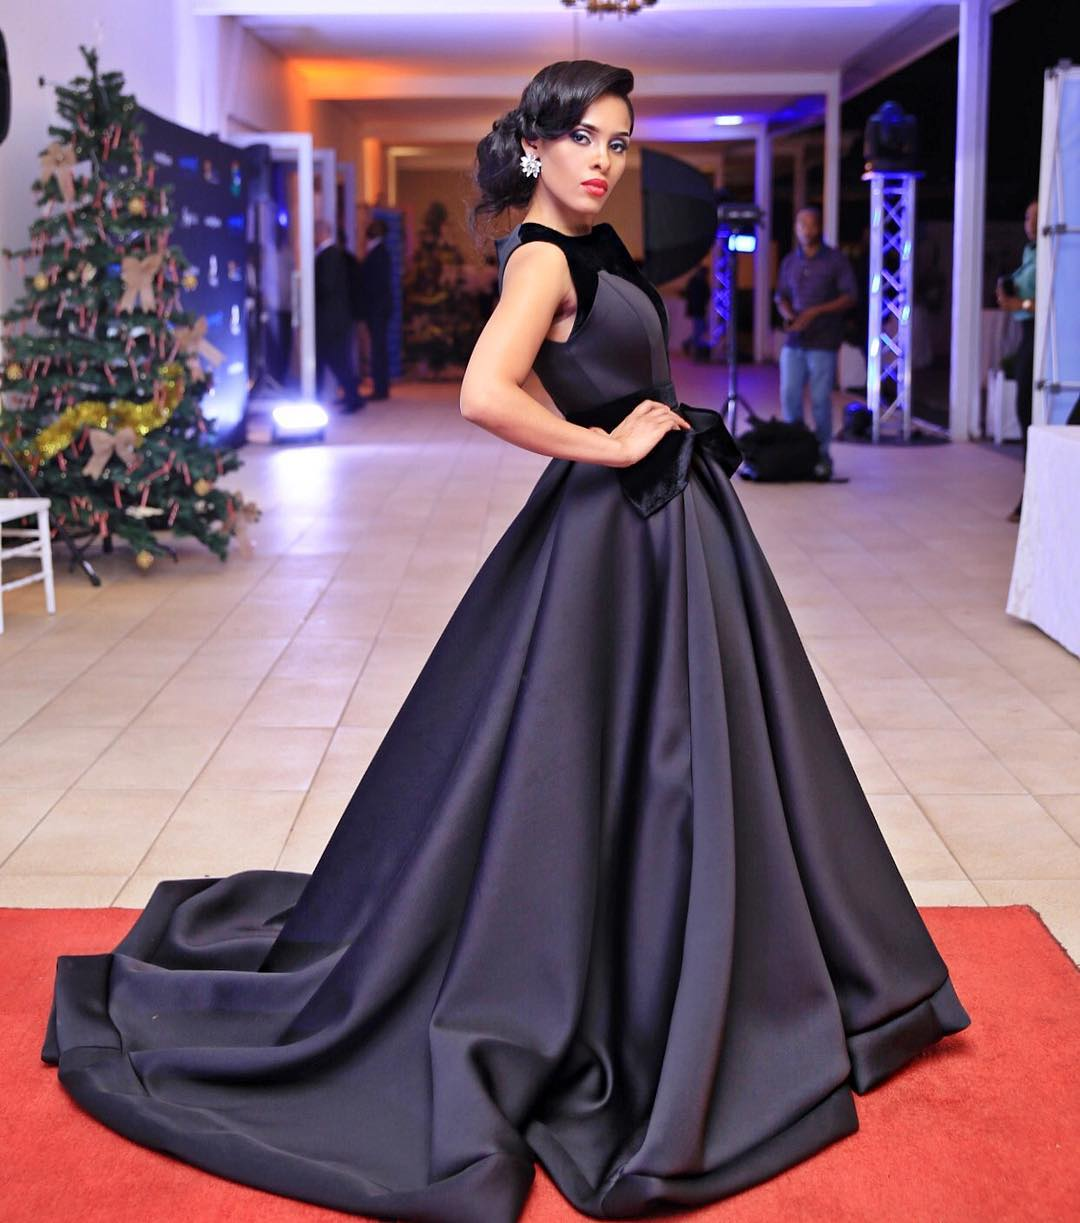 Lotd Ball Dress Inspo From Kefilwe Mabote Kamdora